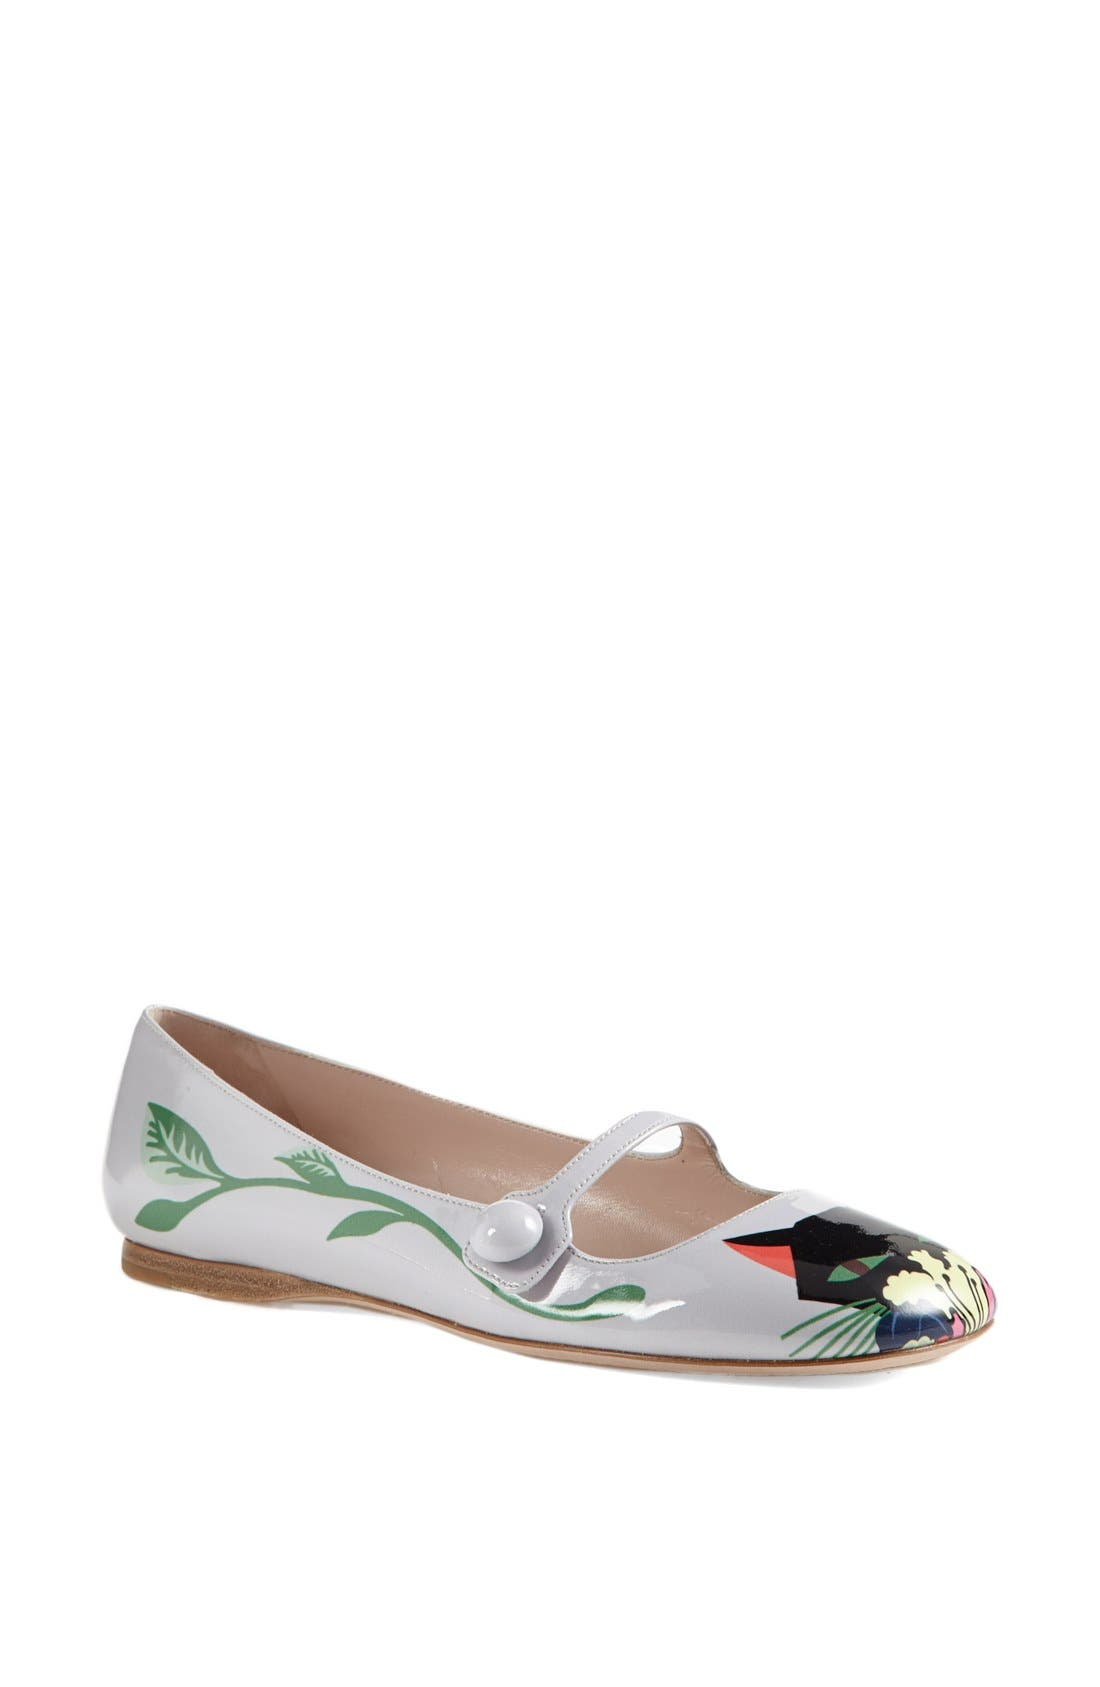 Alternate Image 1 Selected - Miu Miu 'Cat' Mary Jane Flat